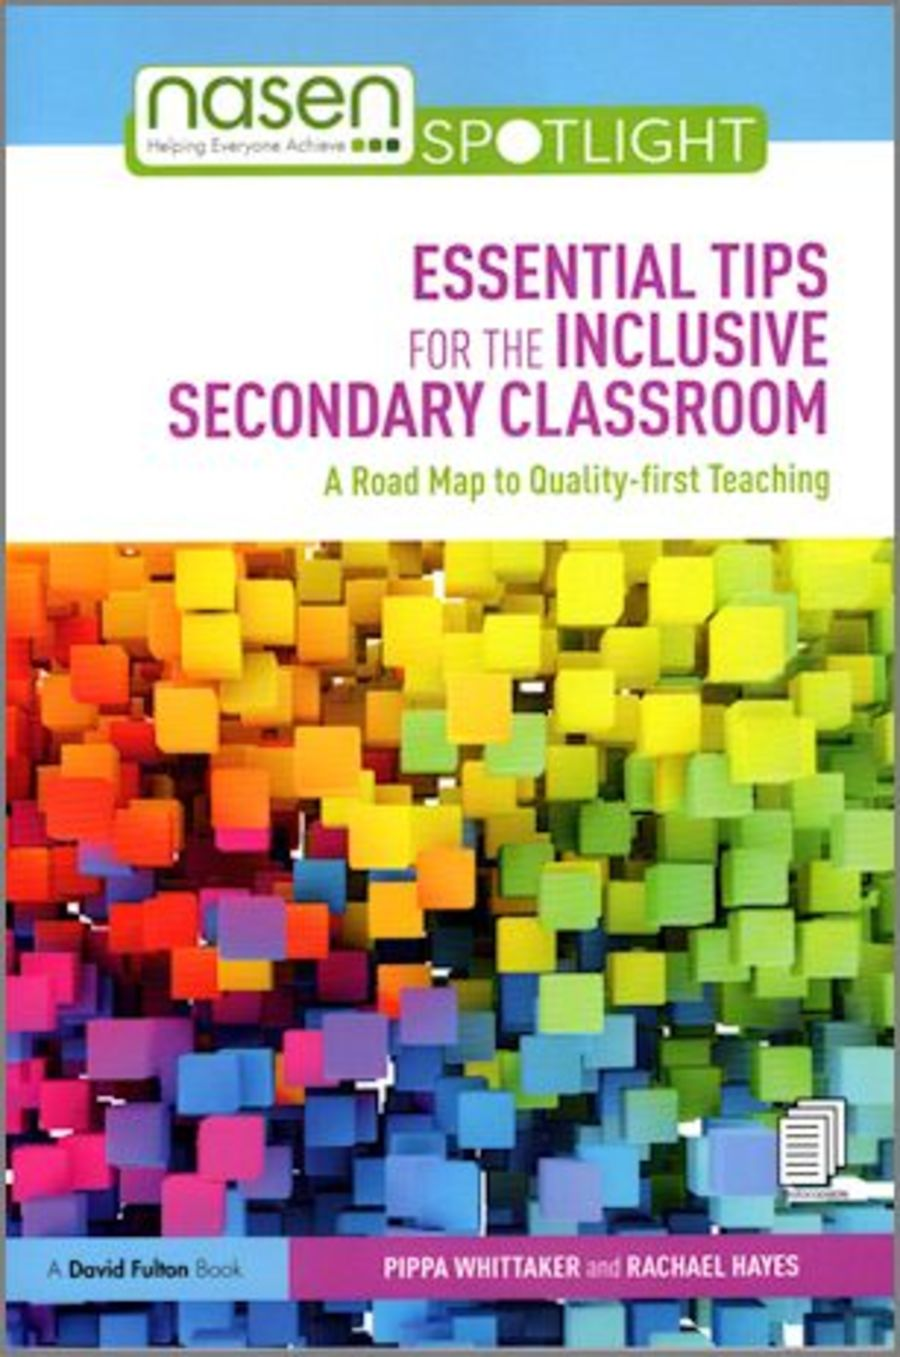 Essential Tips for the Inclusive Secondary Classroom